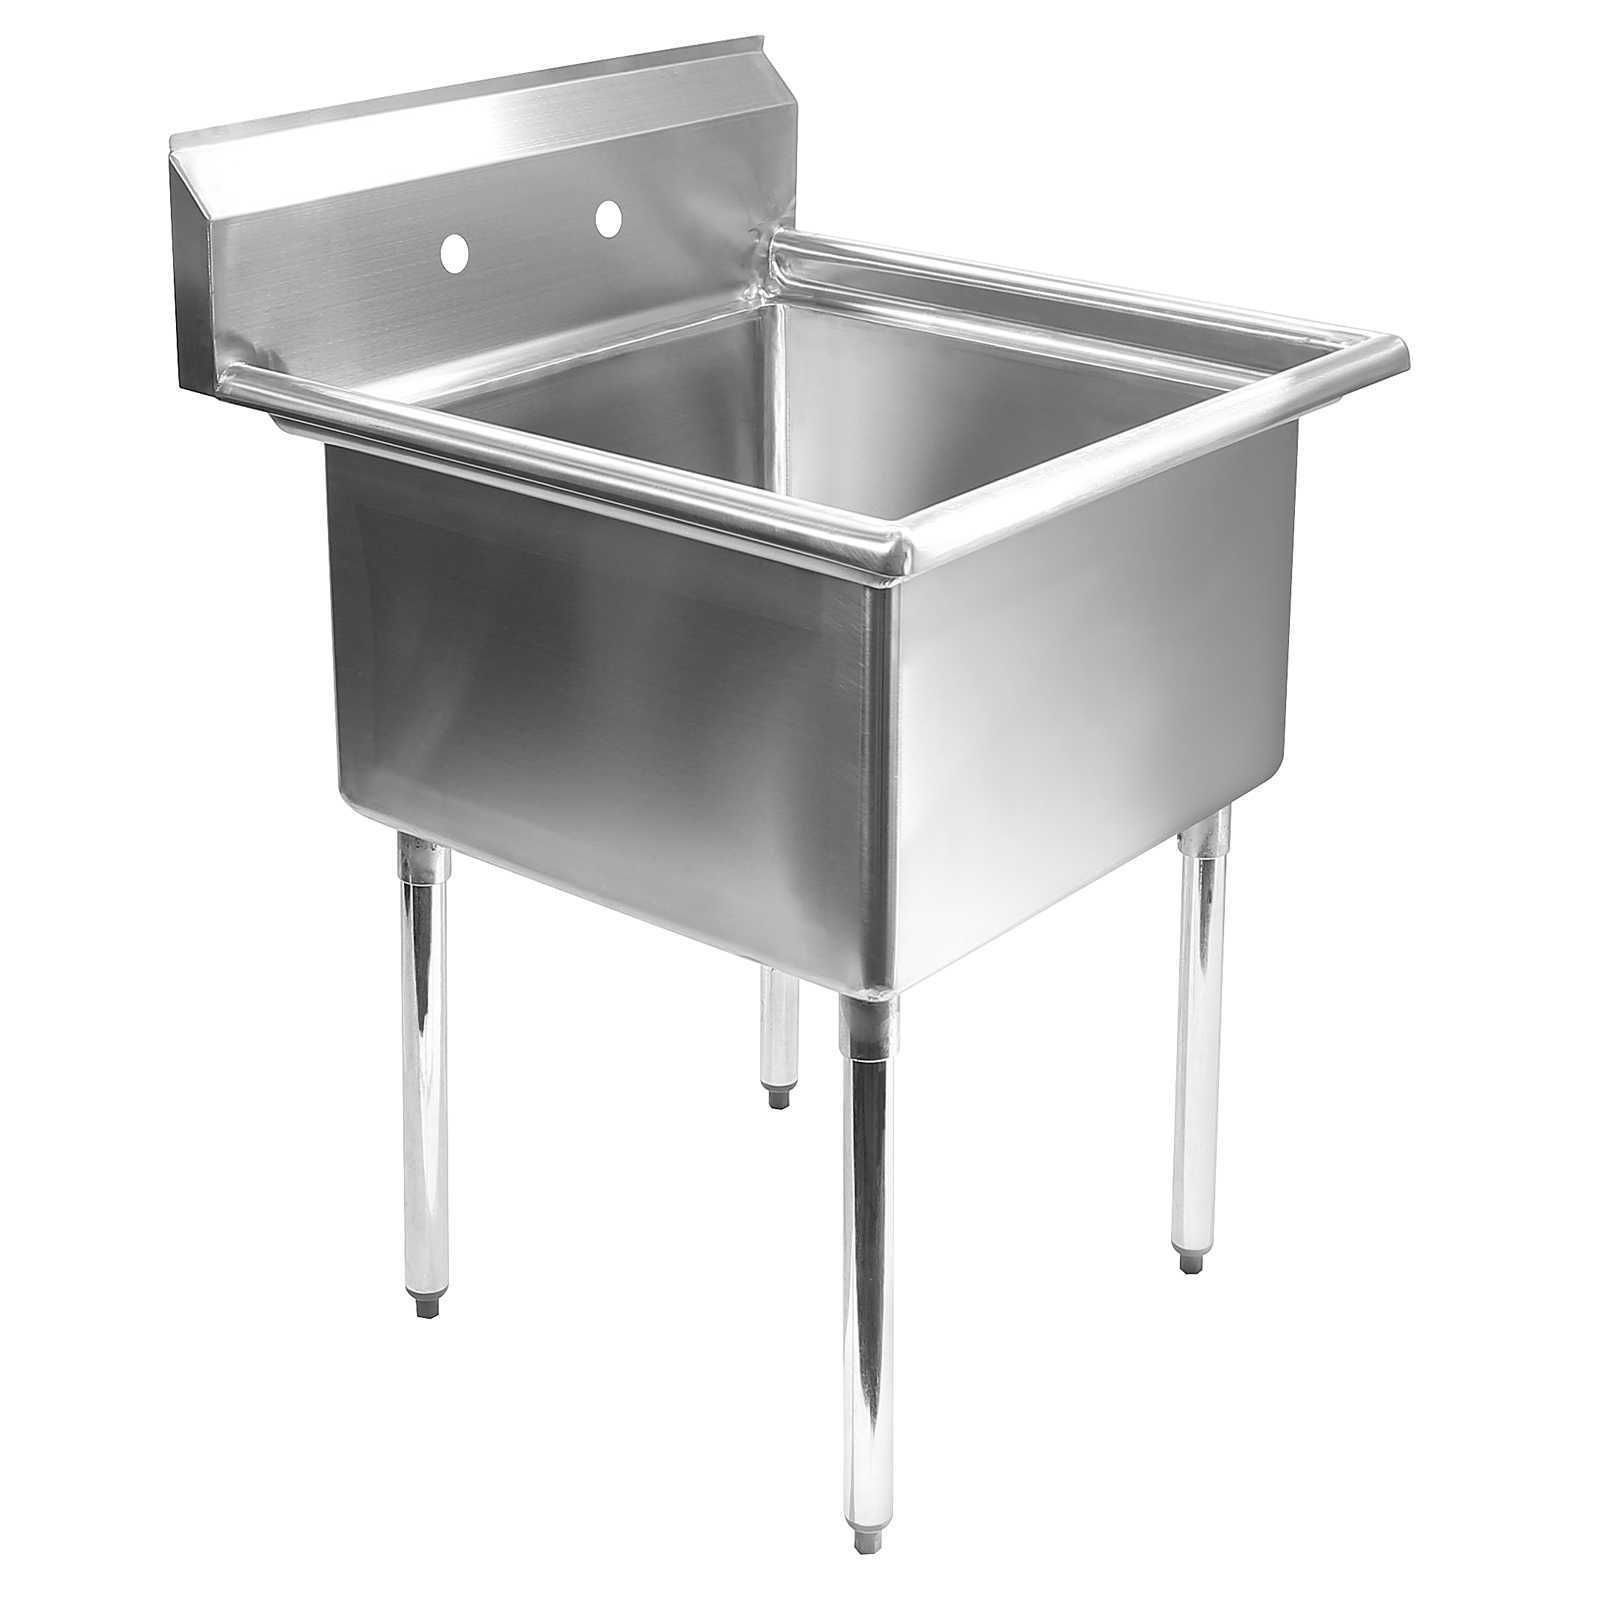 Commercial Stainless Steel Kitchen Utility Sink - 24'' X 24'' Bowl - 30'' Overall